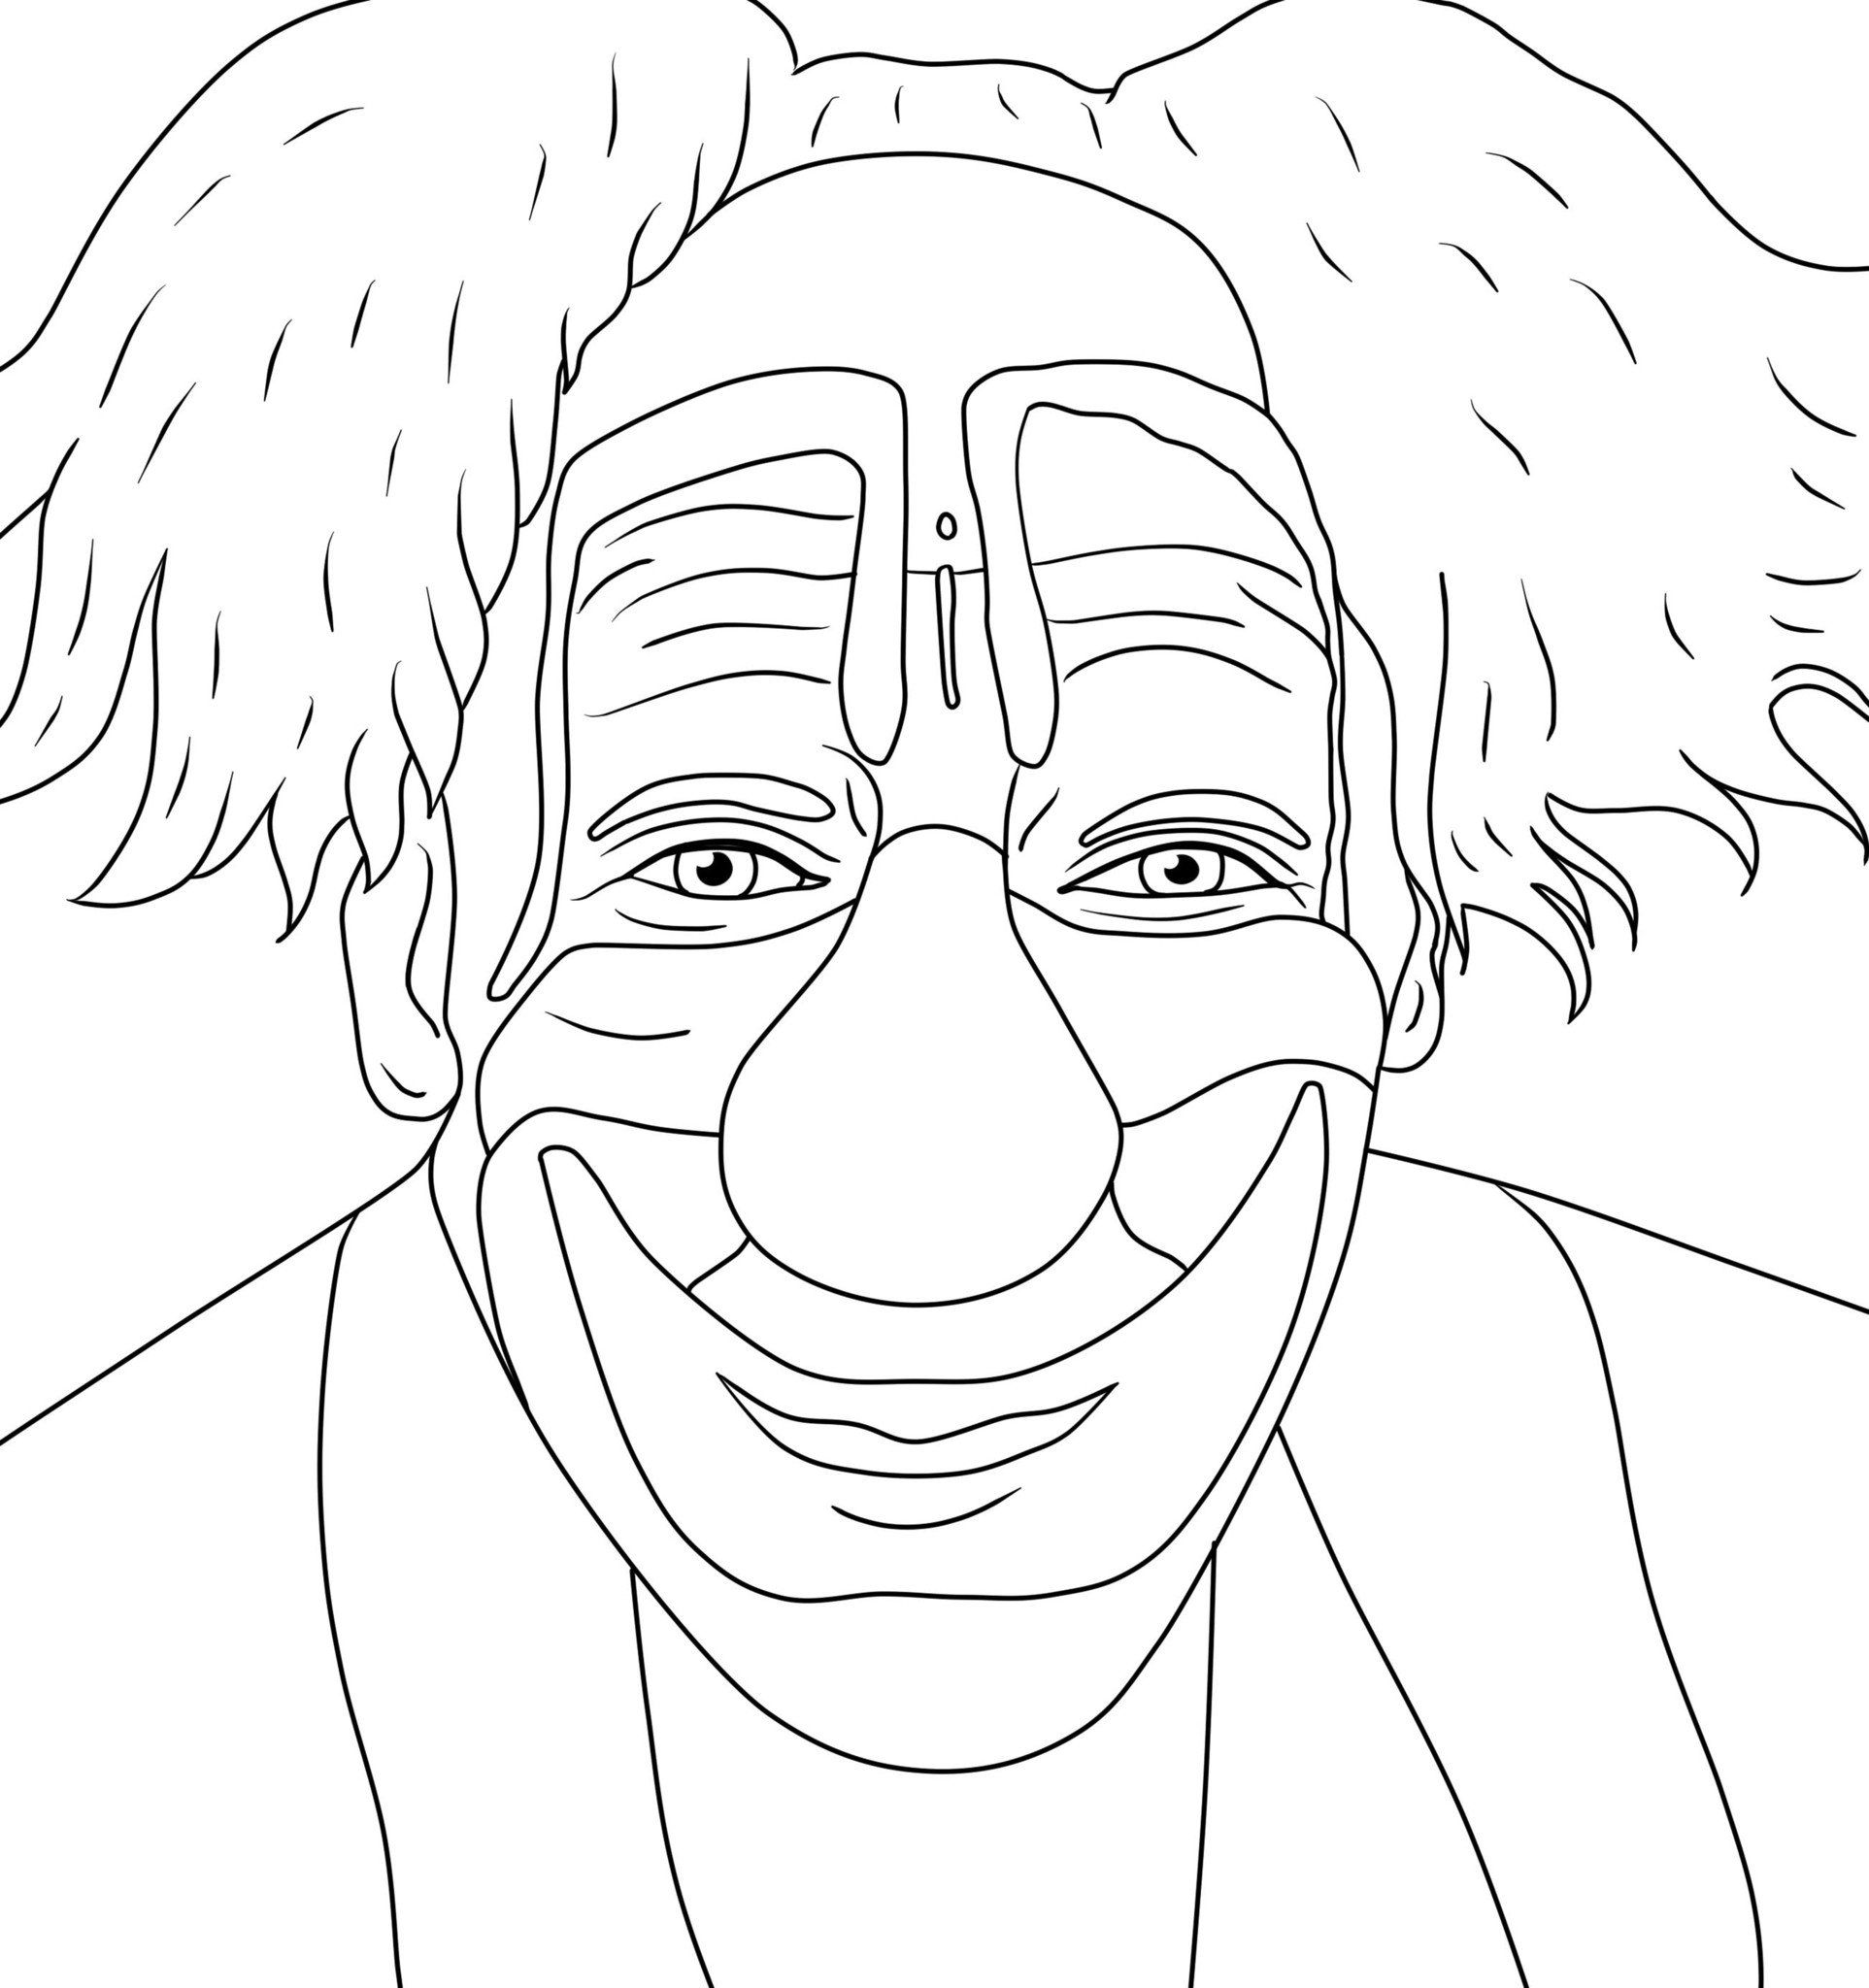 Creepy Clown Coloring Pages - Coloring Home